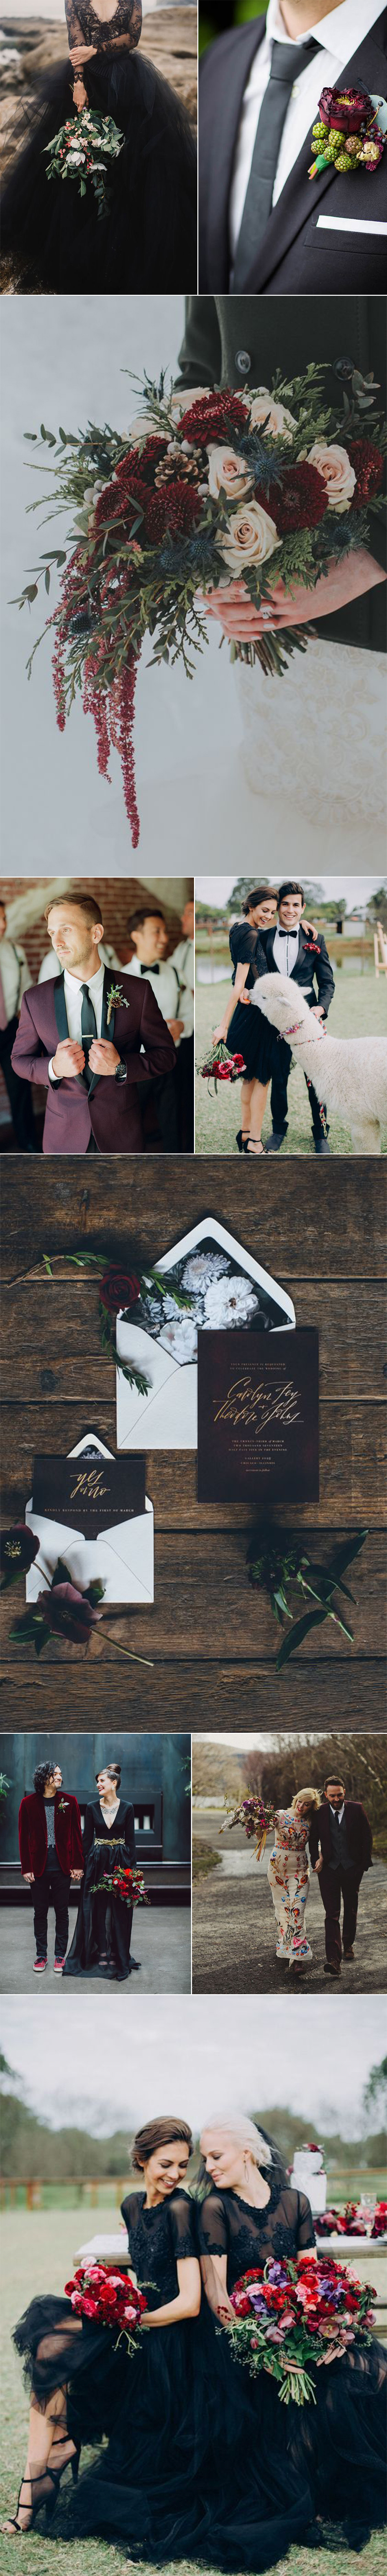 Winter Wedding In Black and Burgundy